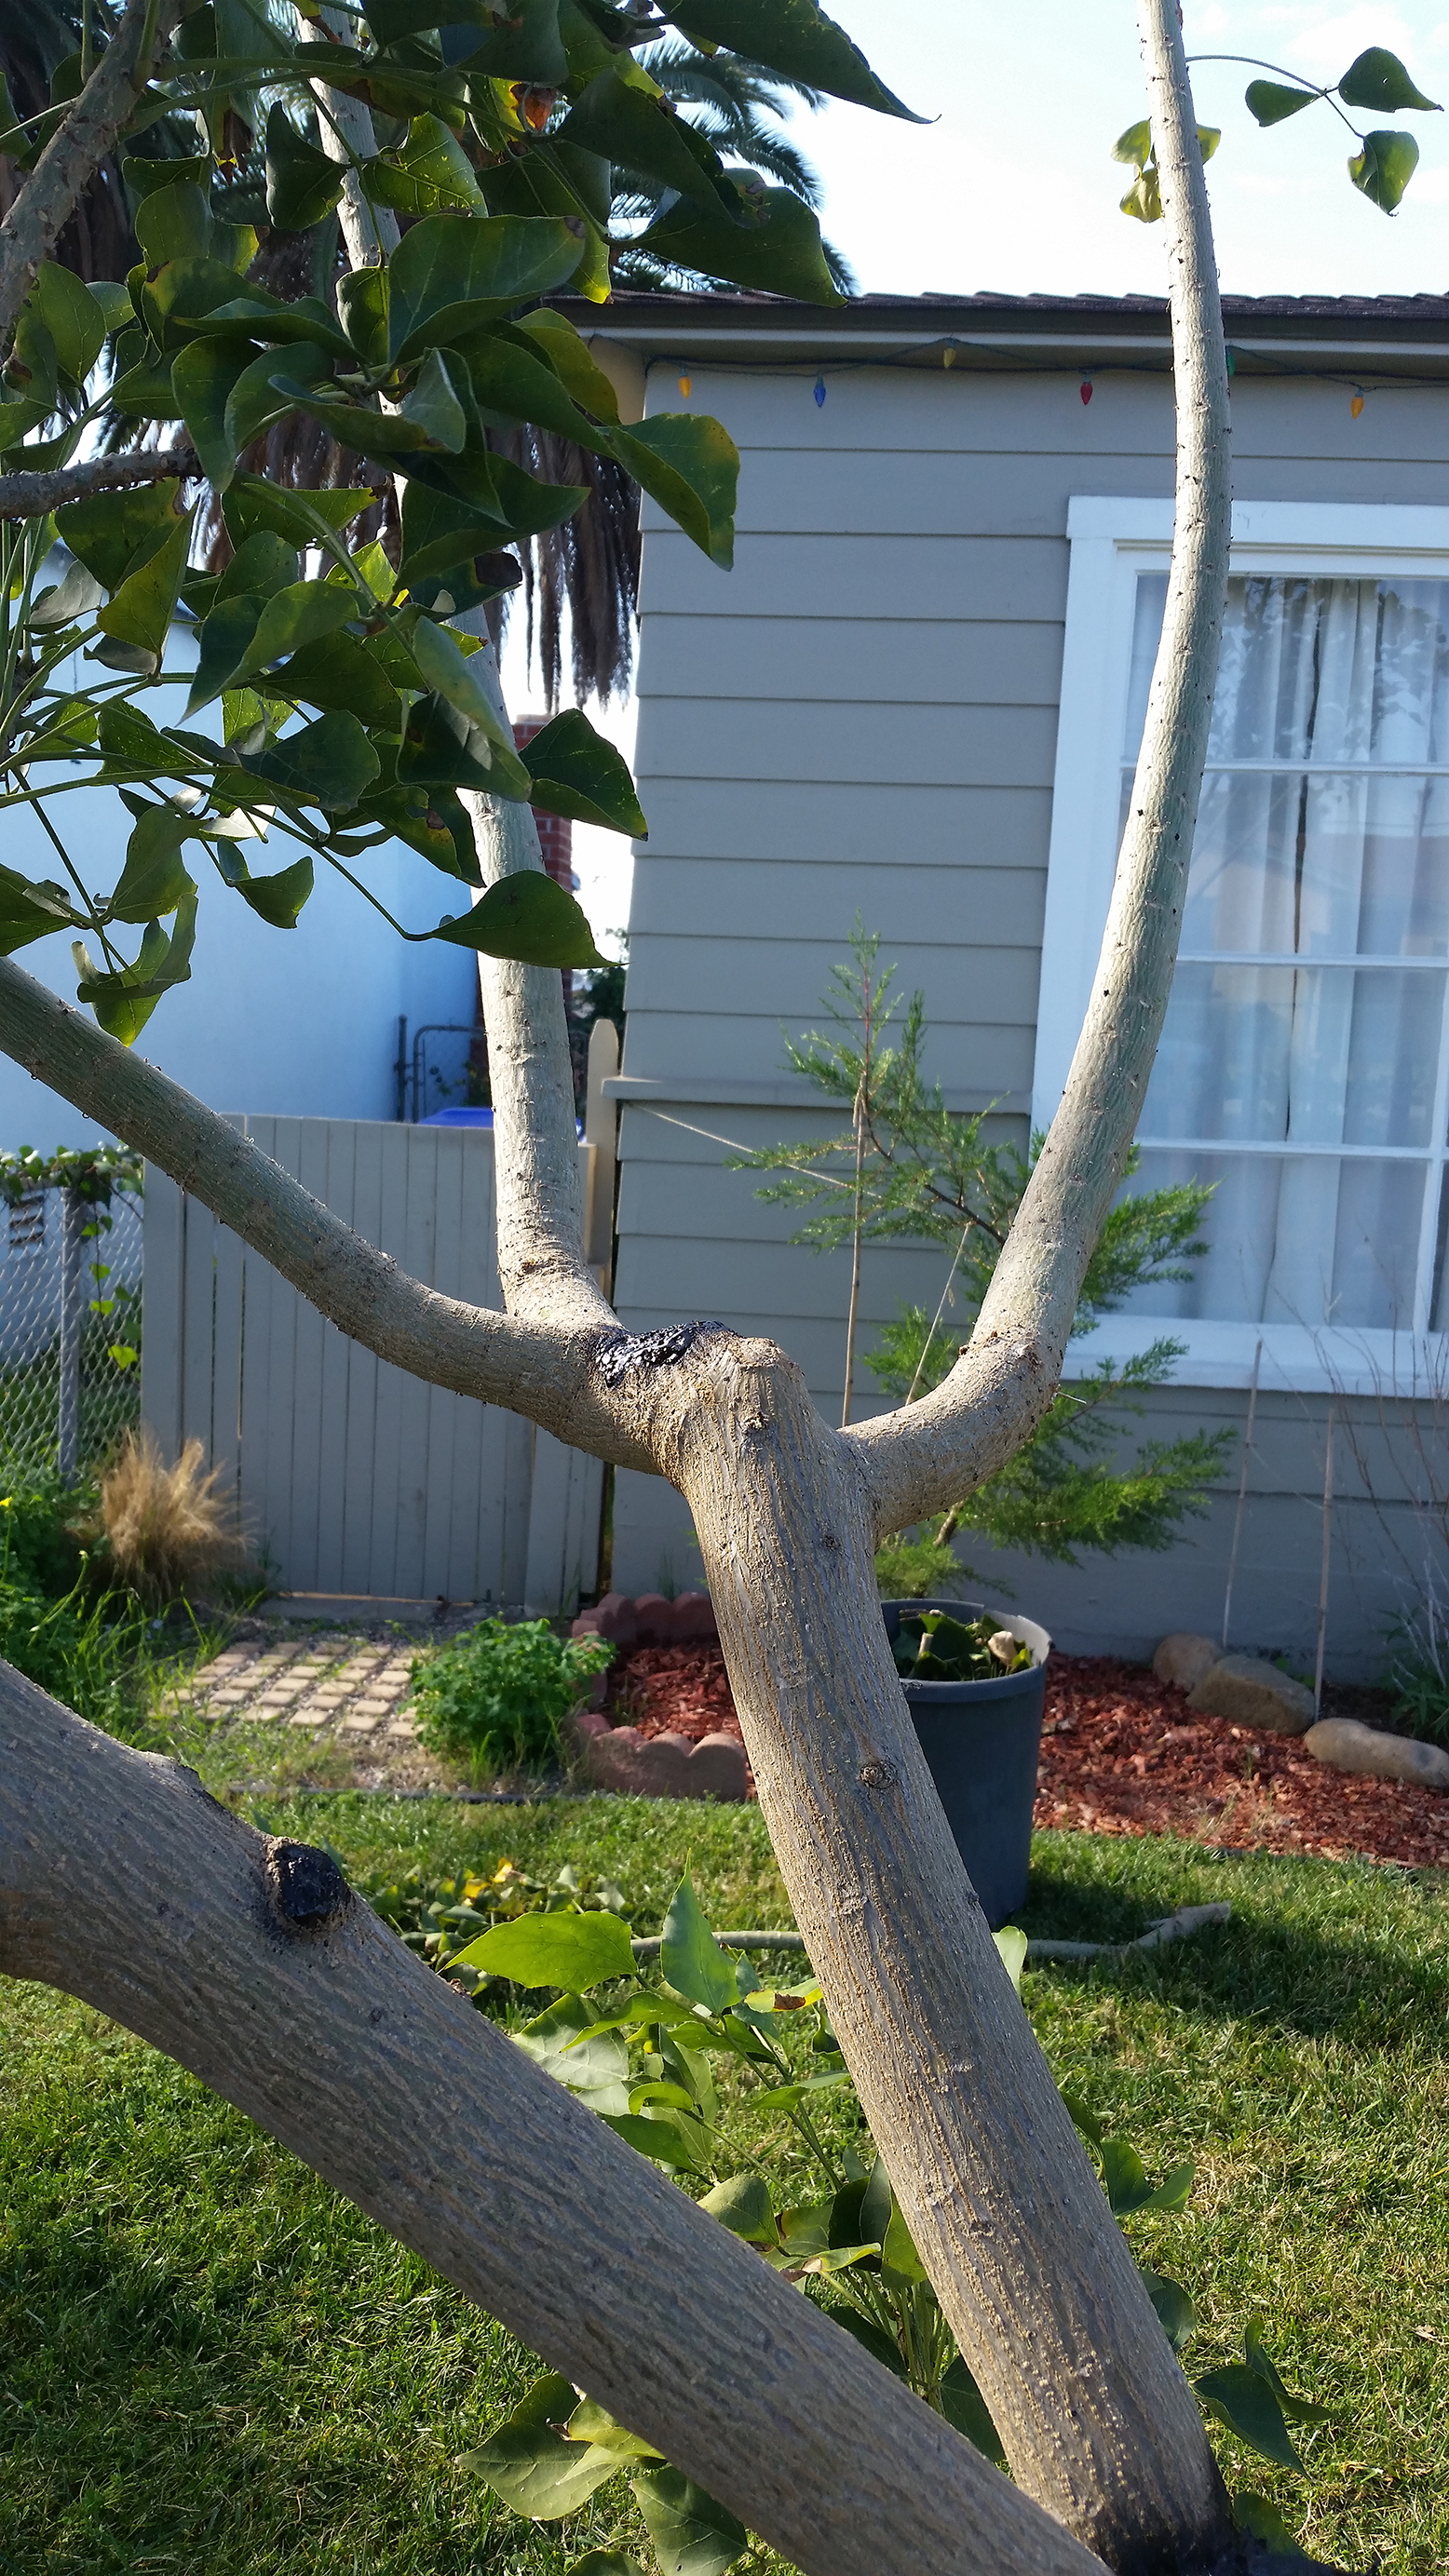 Winter Pruning of the Coastal Coral Tree (Erythrina caffra